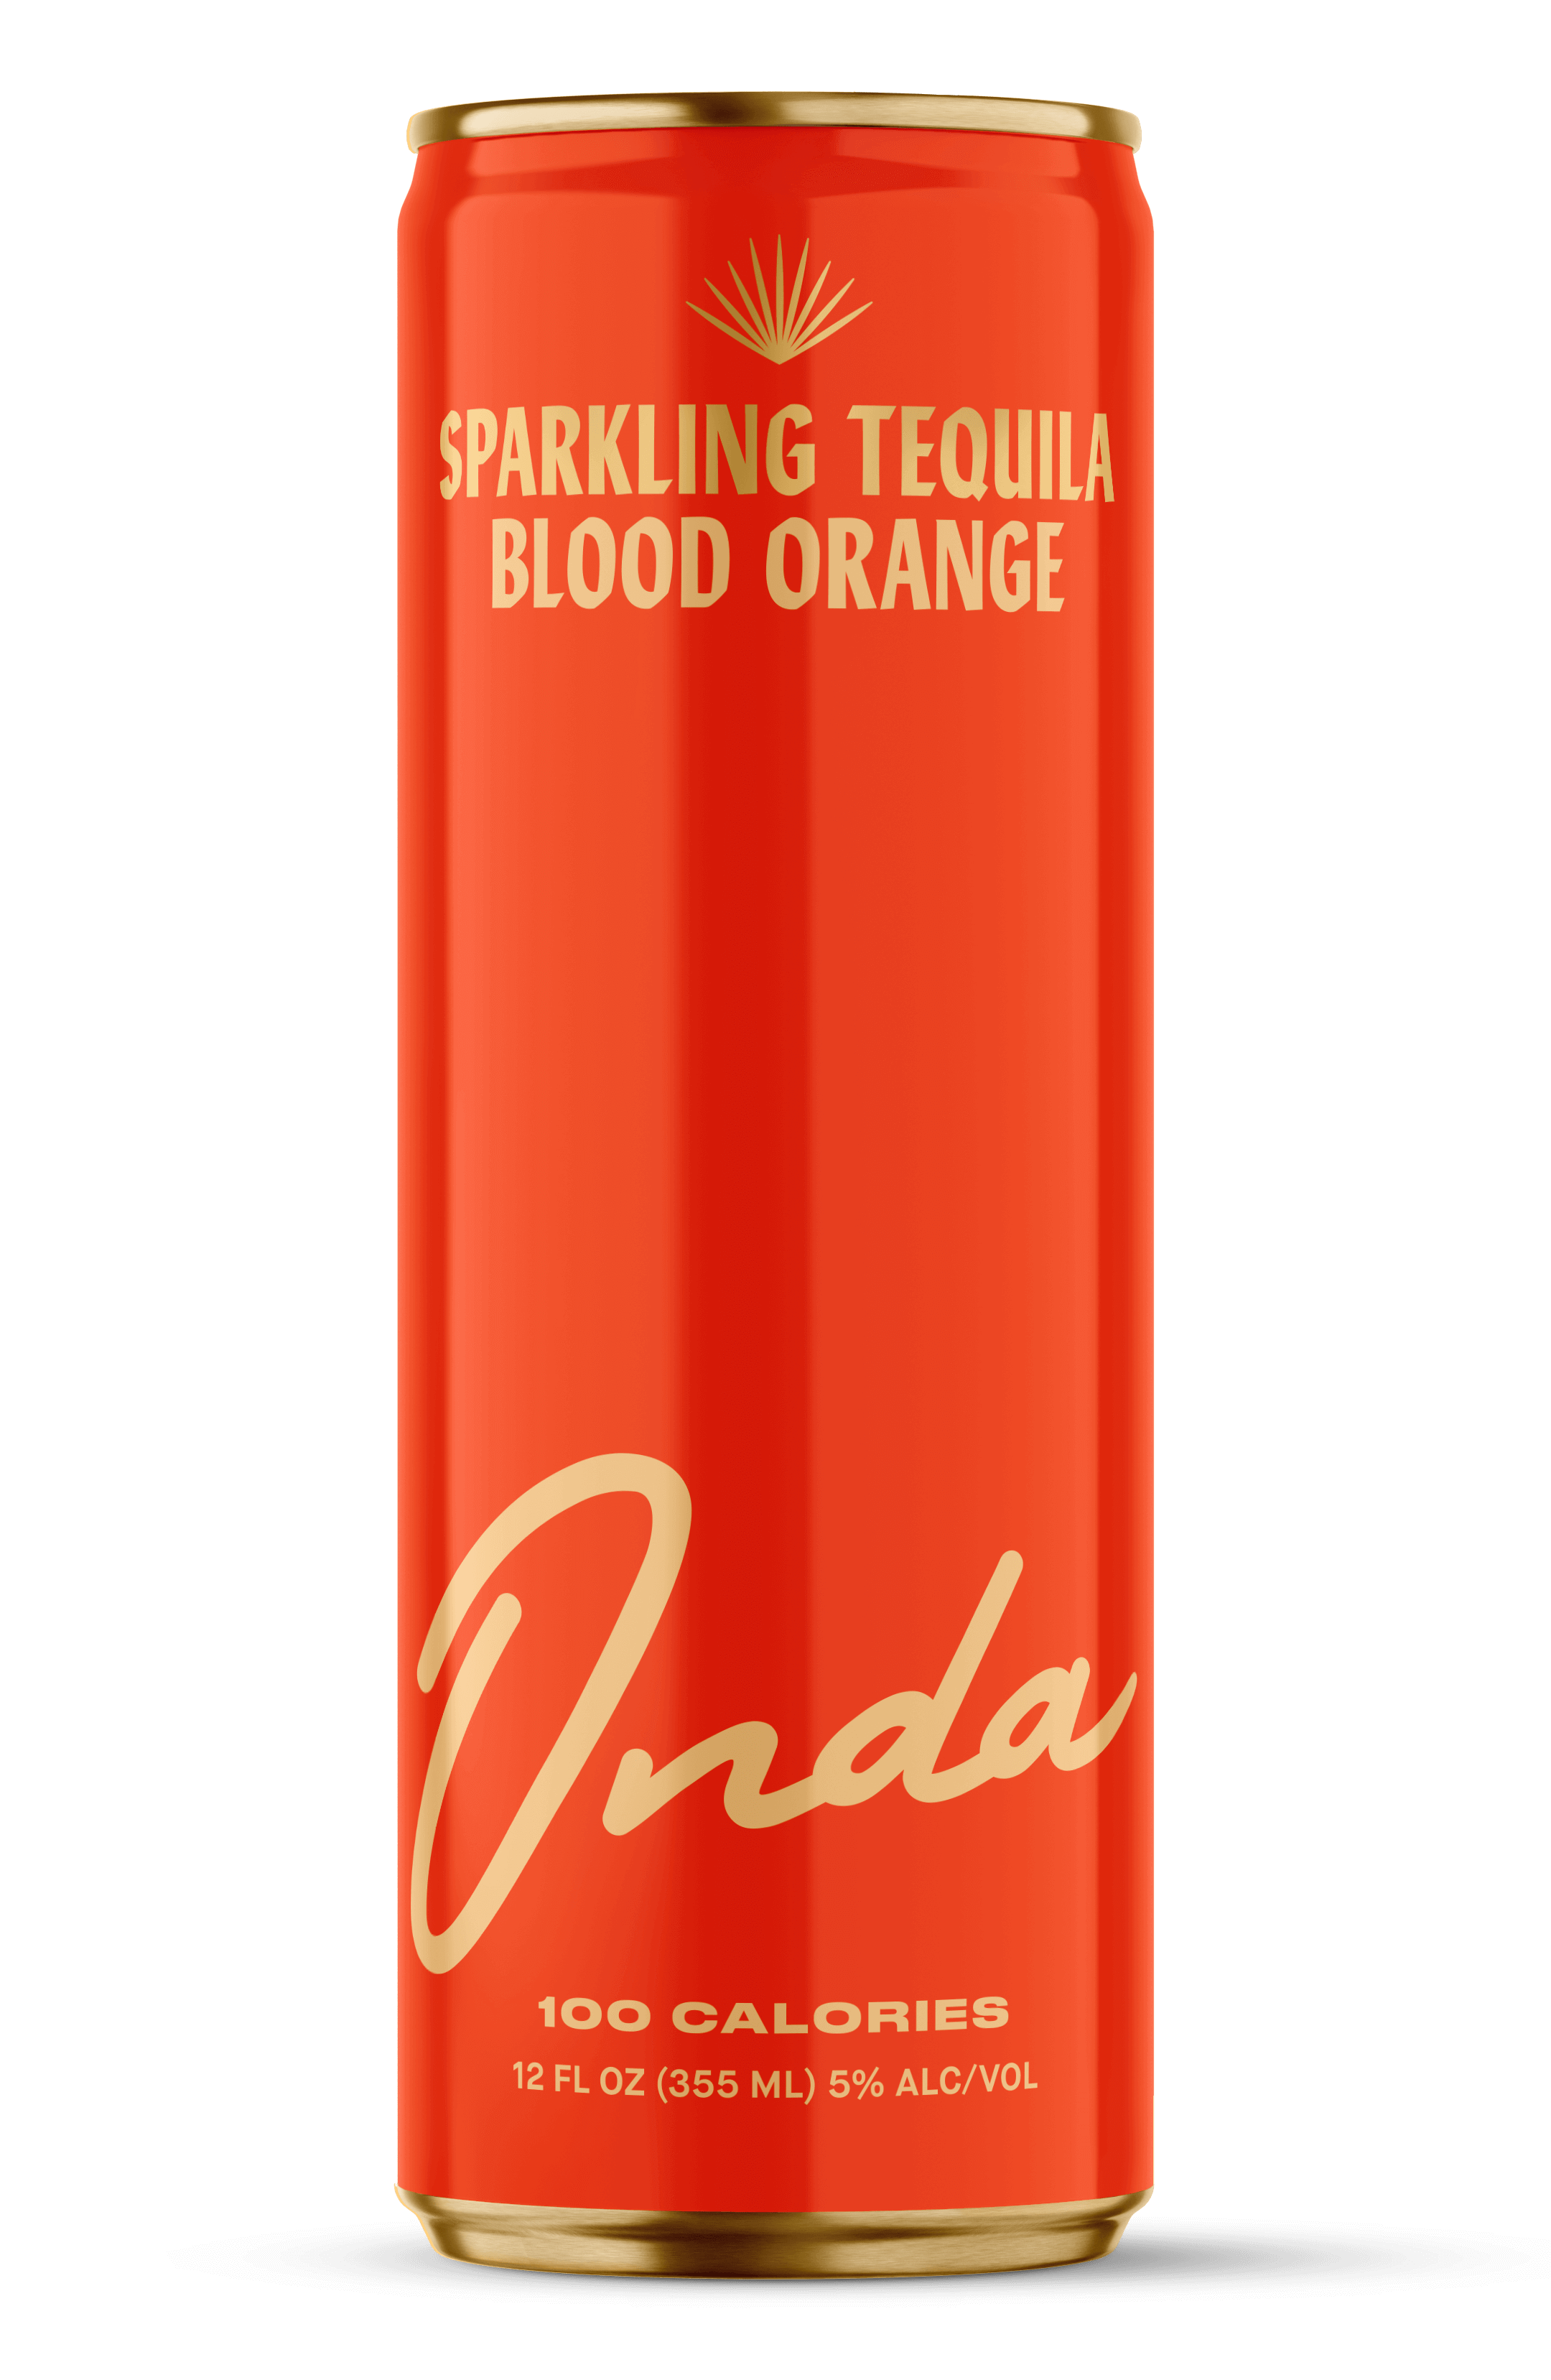 Sparkling Tequila Blood Orange